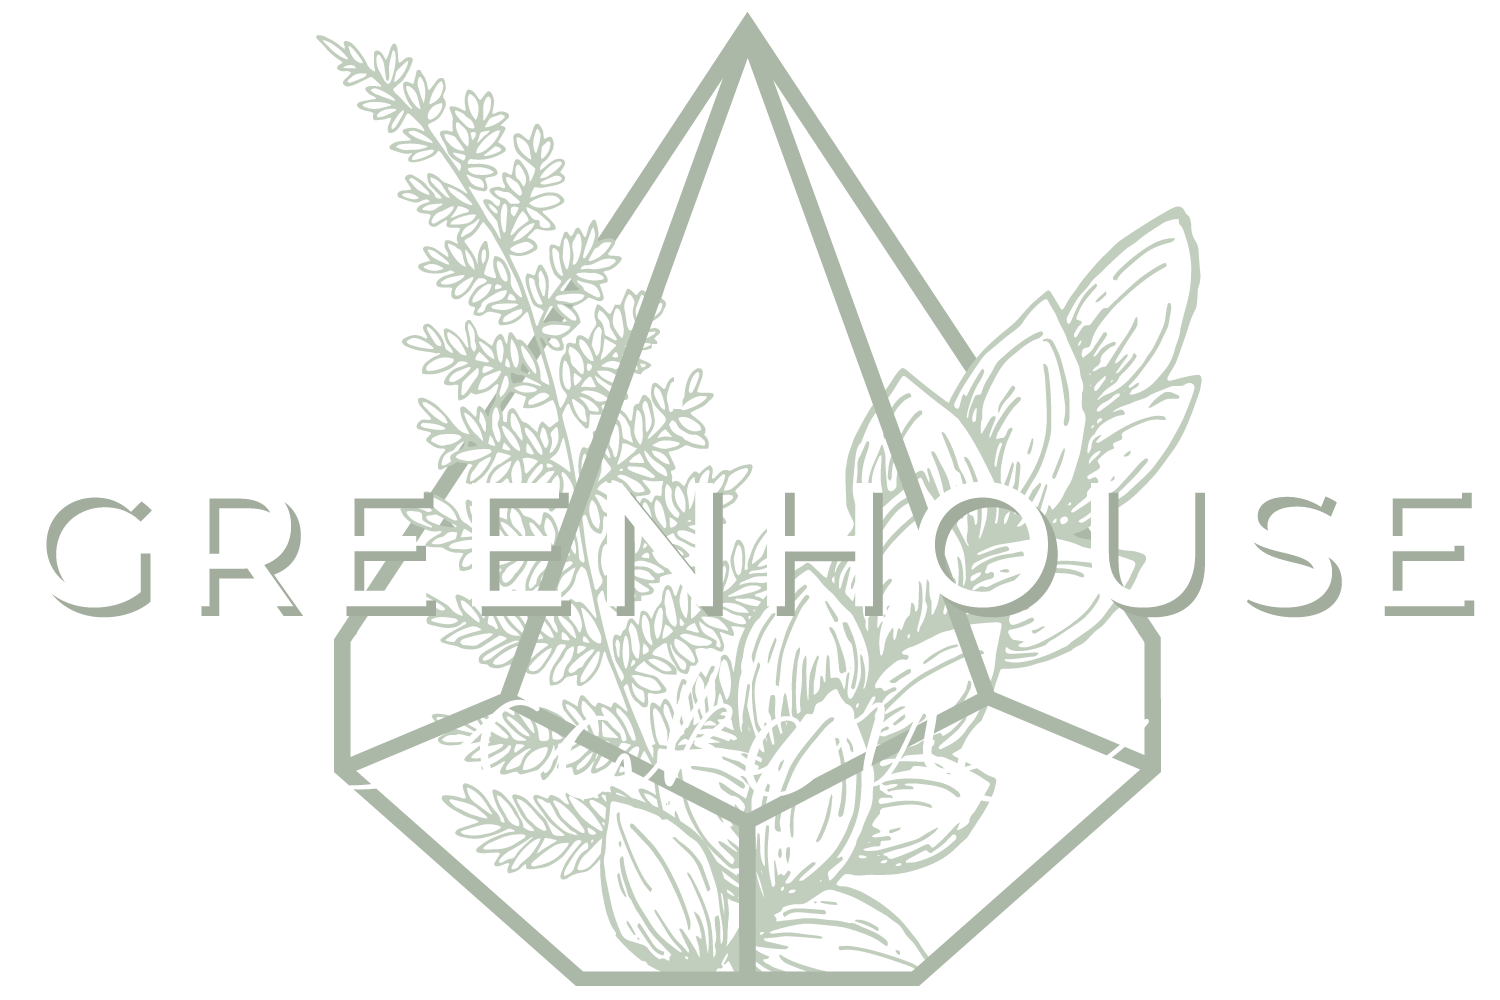 The Greenhouse Cakerie